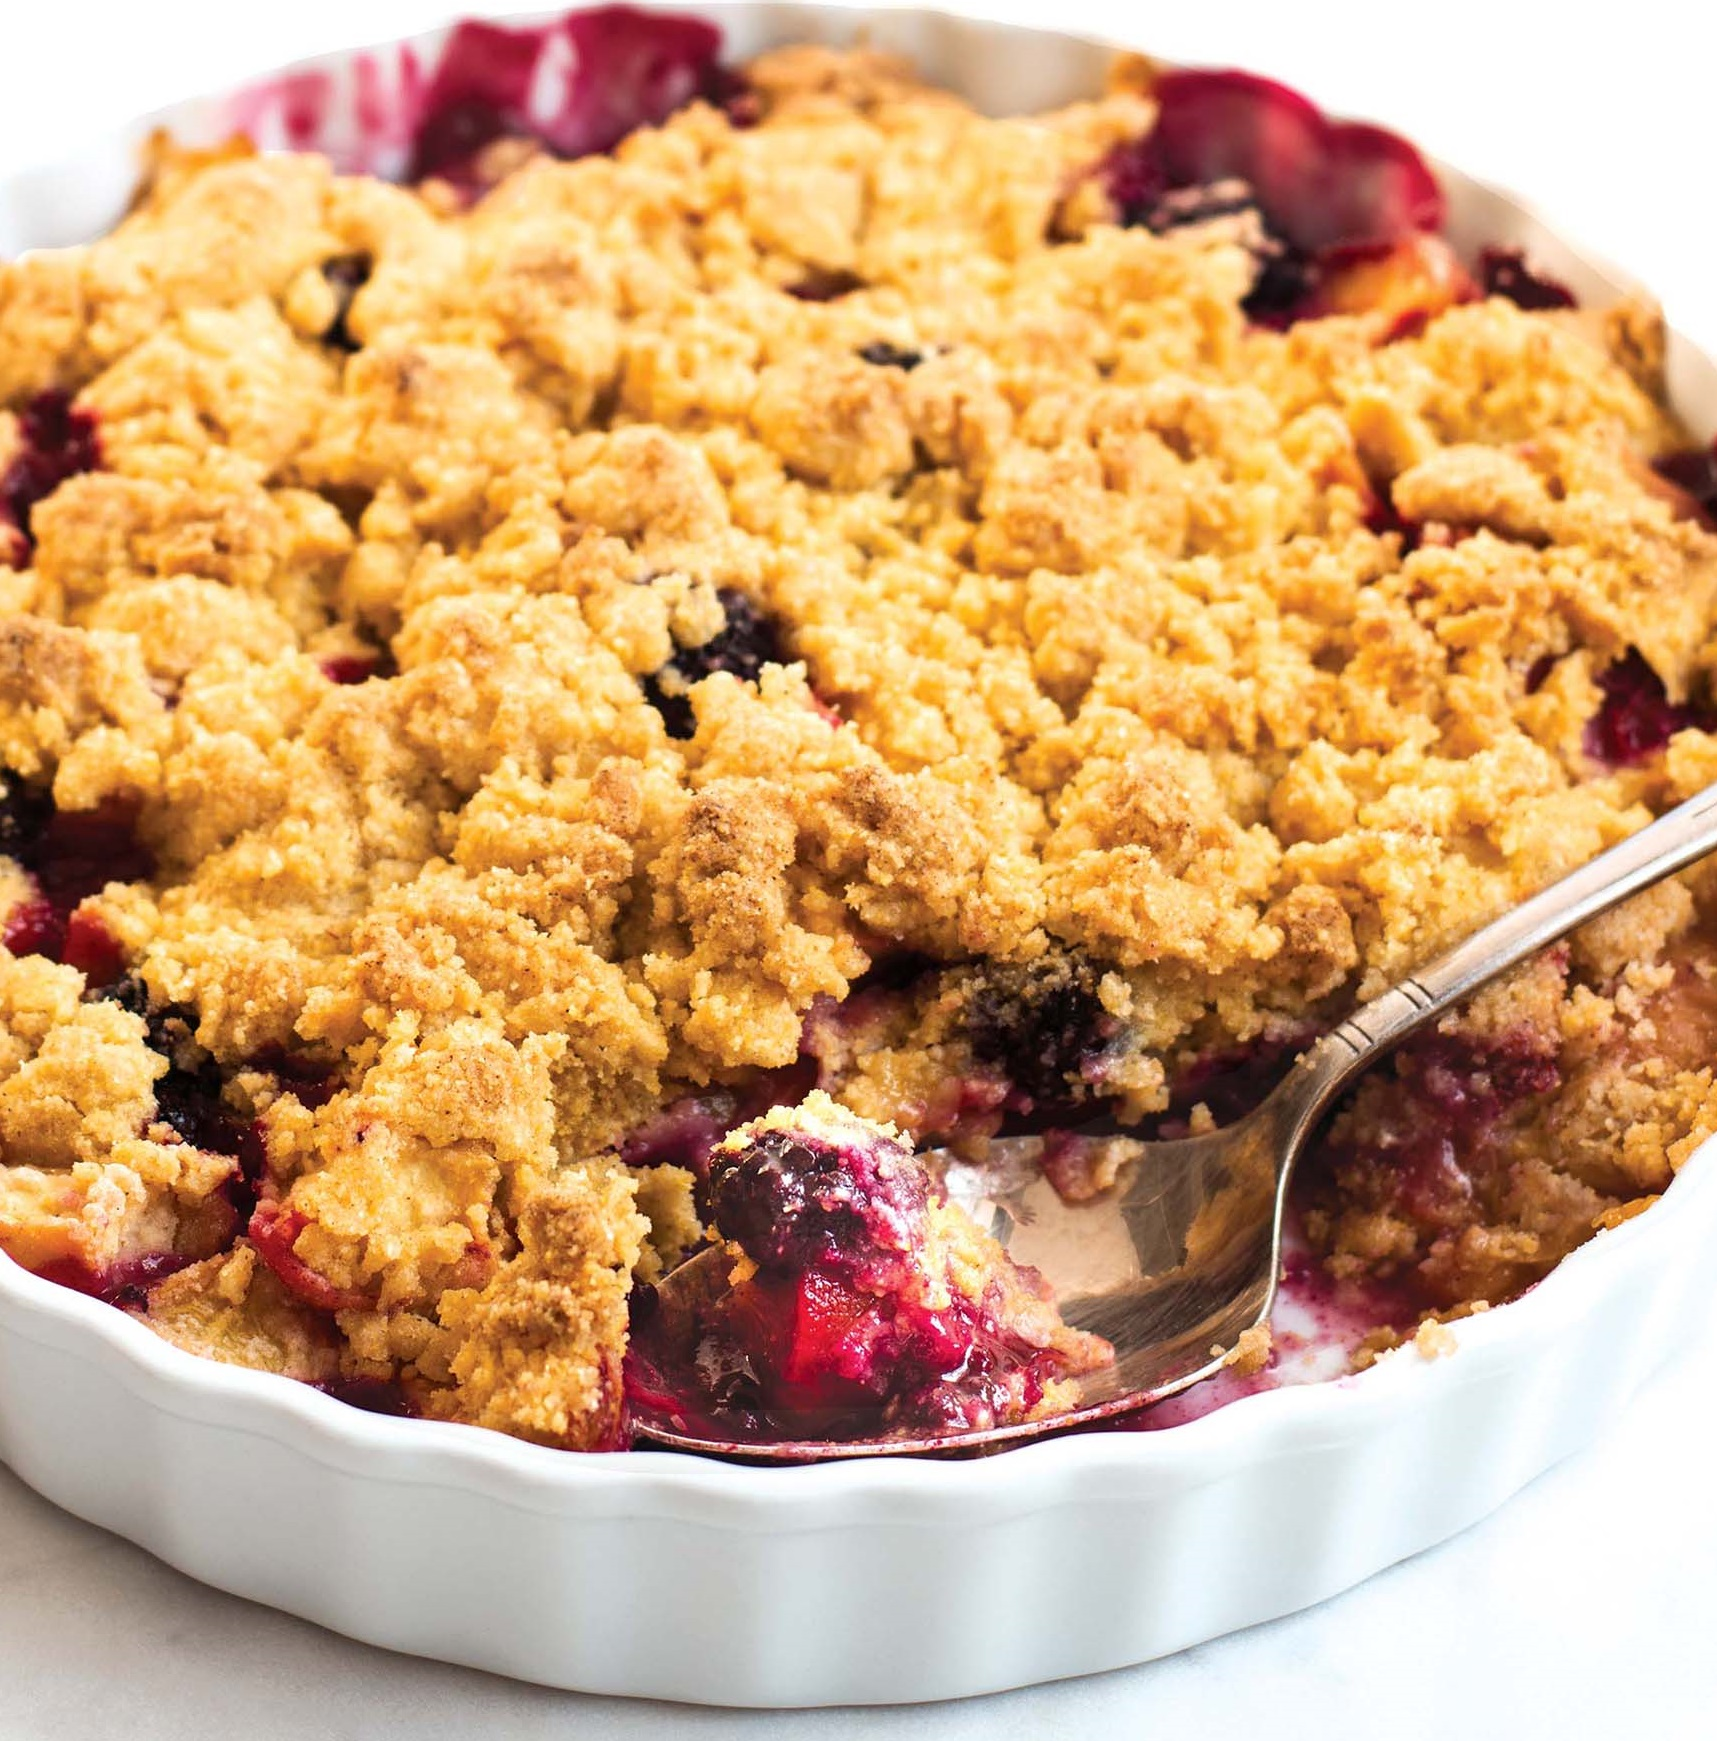 Peach and Blackberry Cornmeal Crumble | Allergic Living